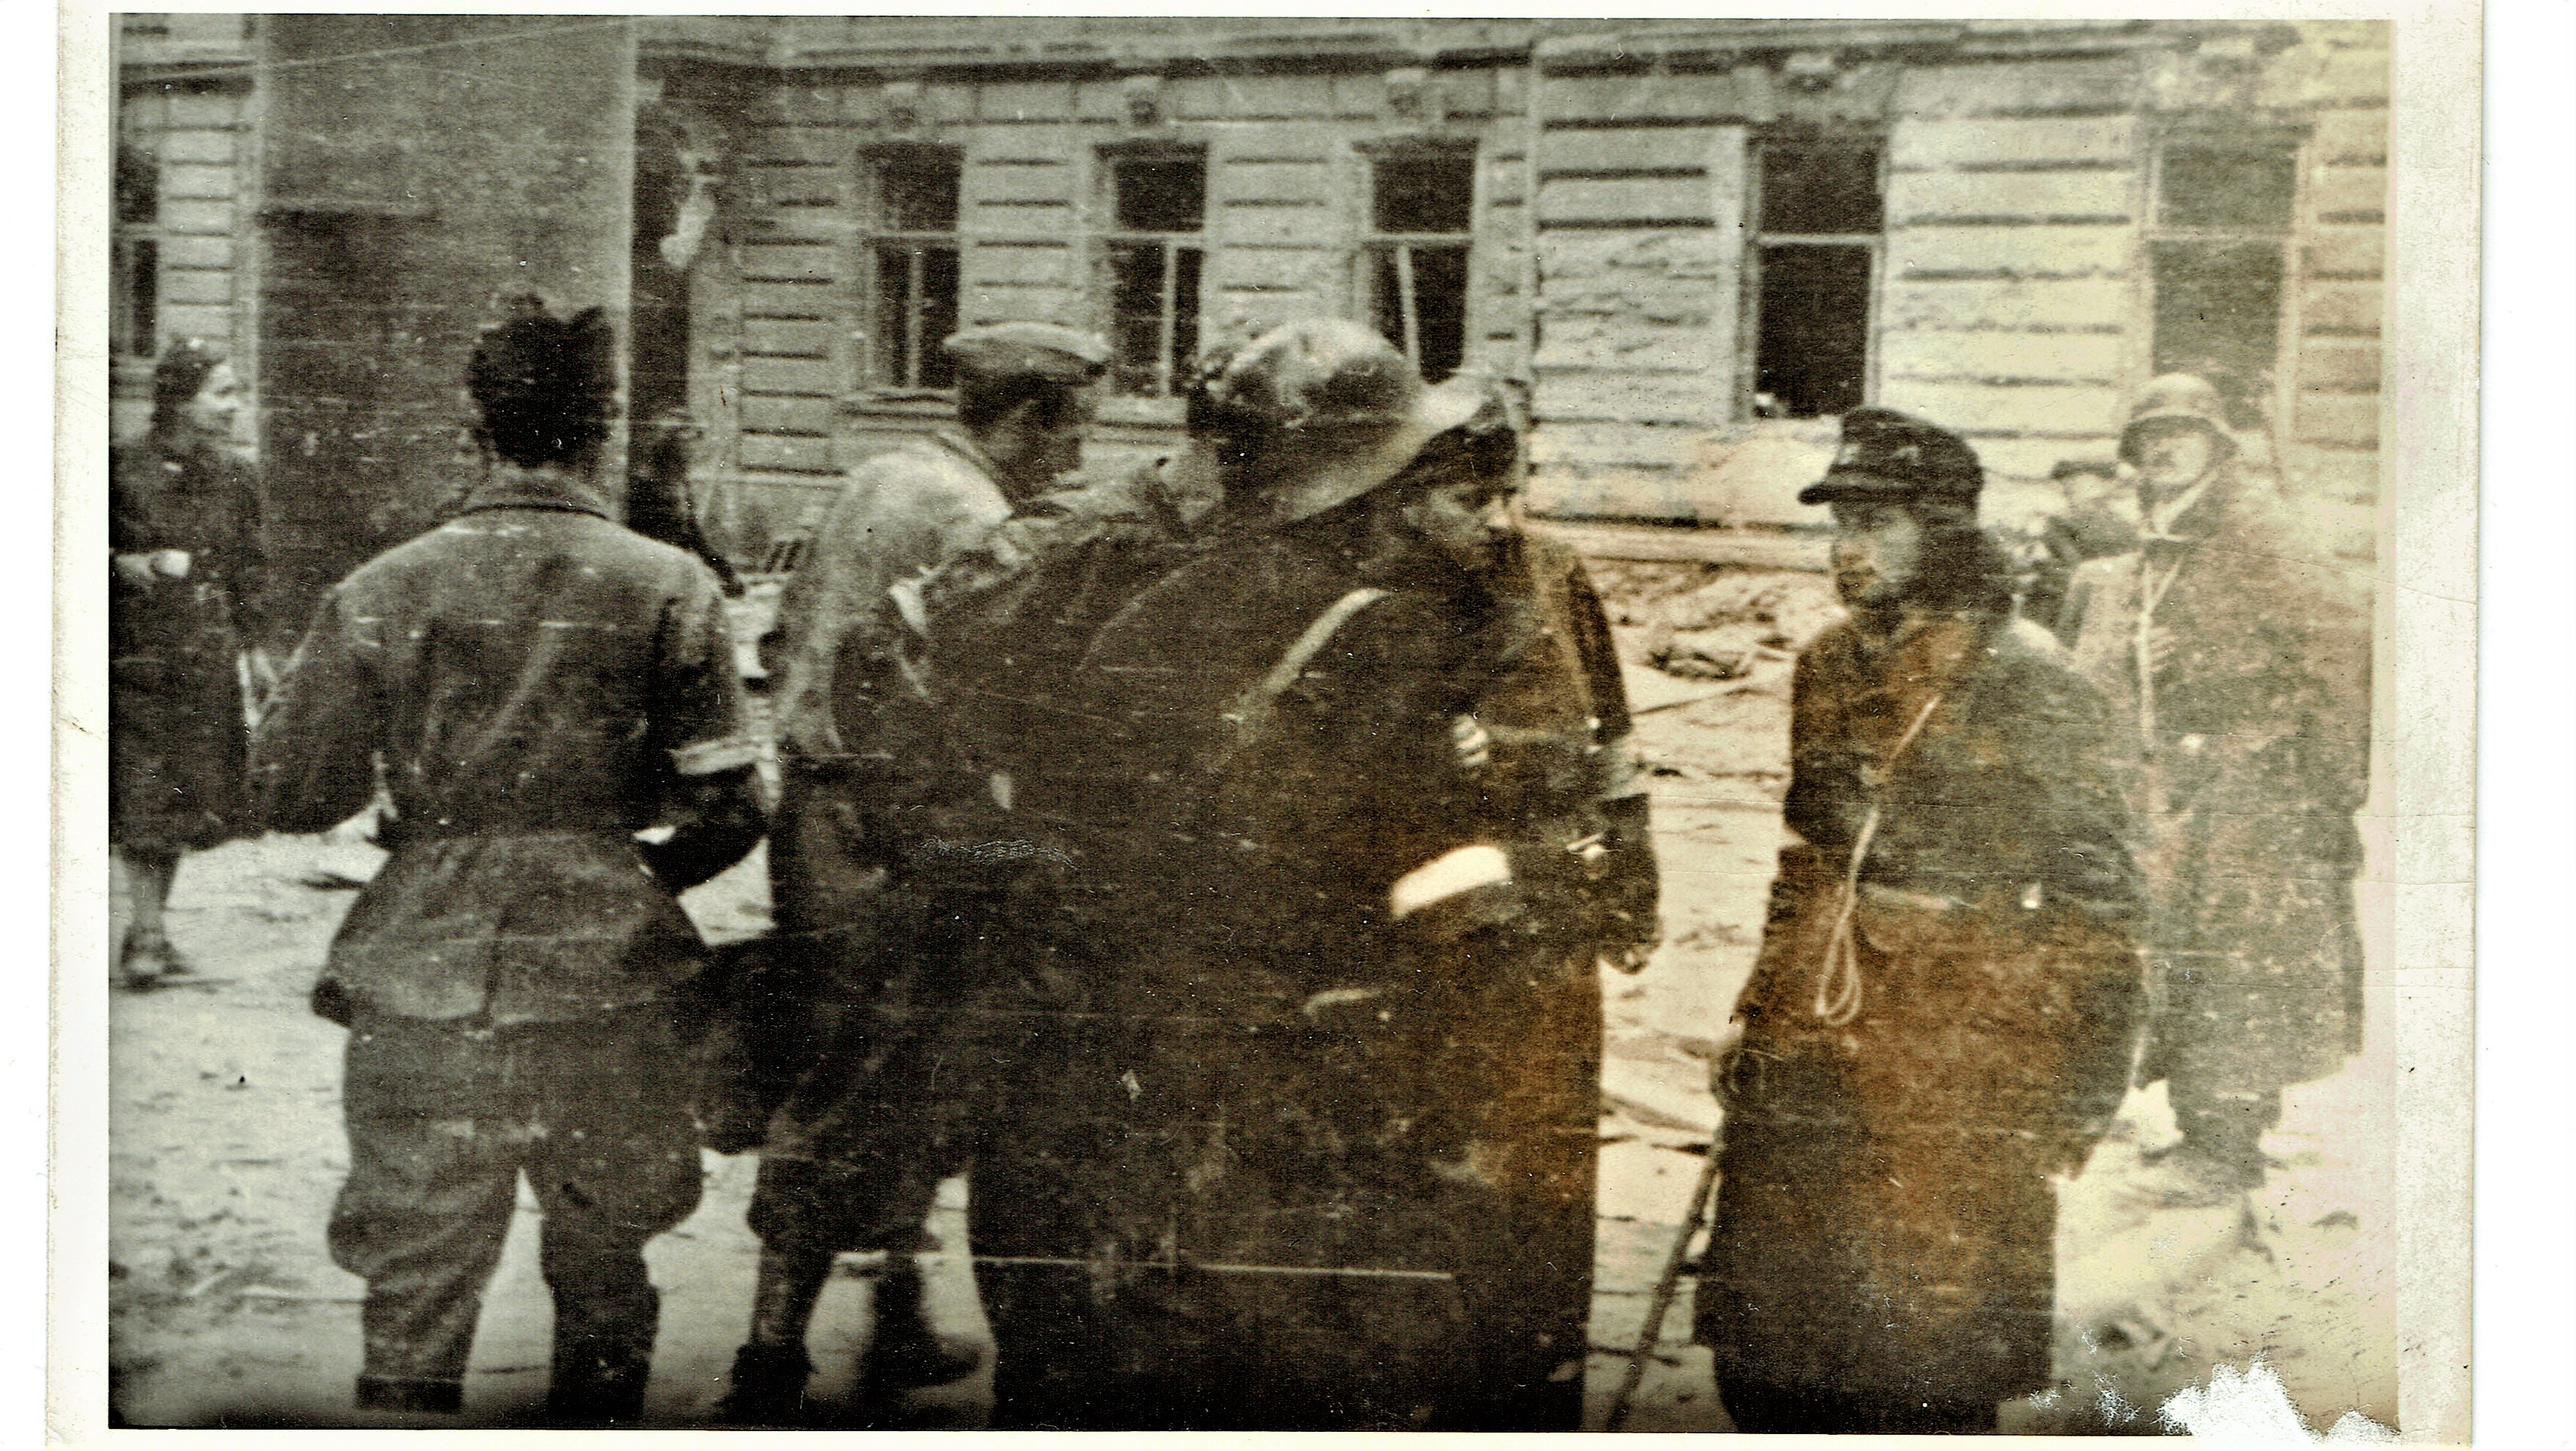 WWII soldiers in discussion on street